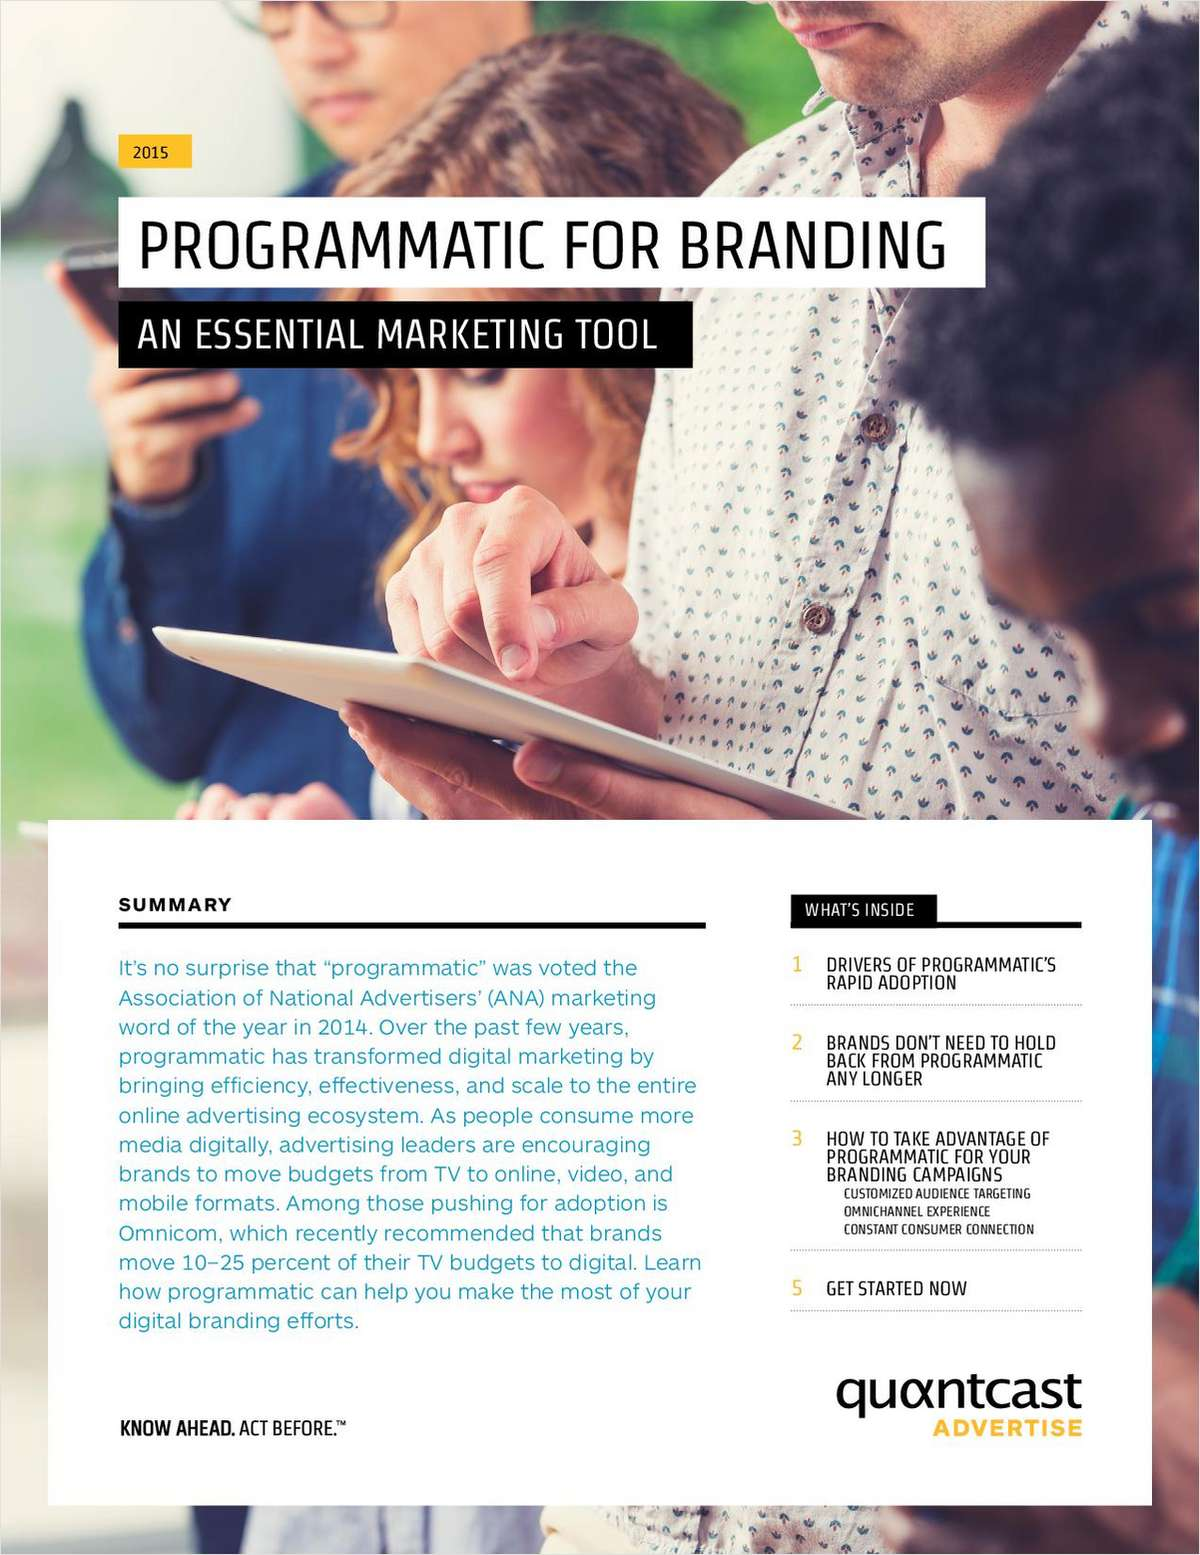 Programmatic for Branding: An Essential Marketing Tool